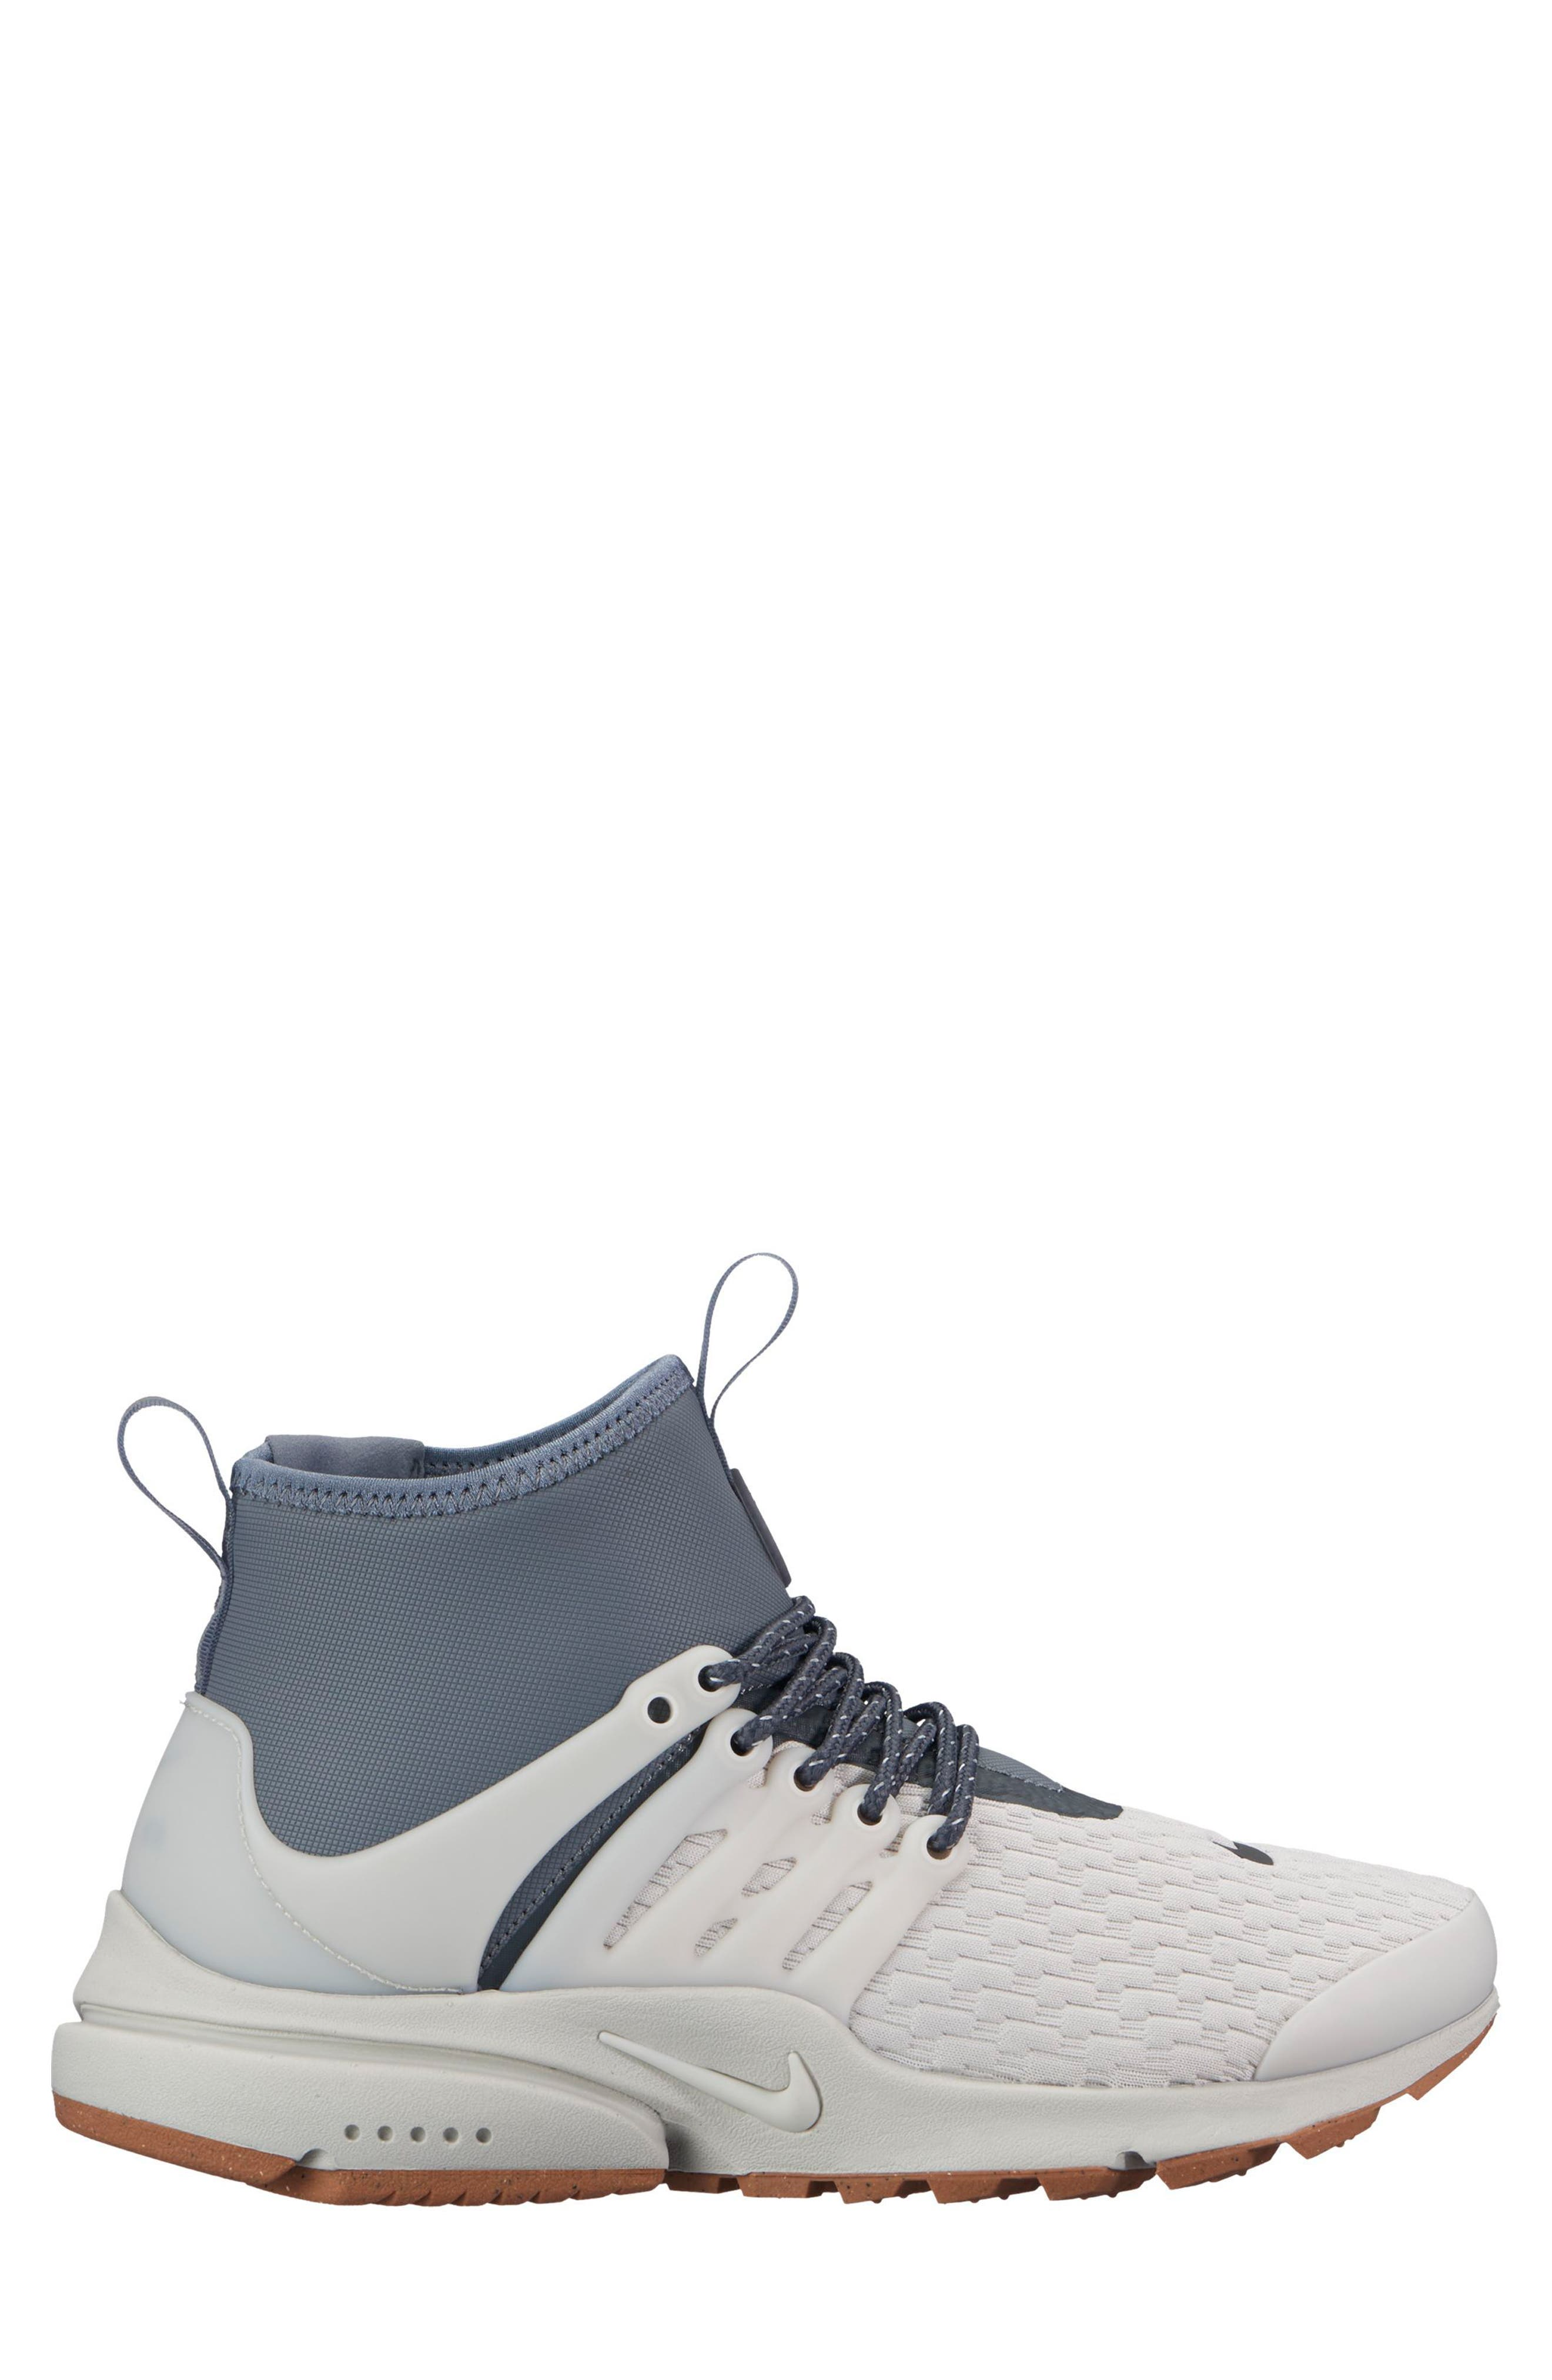 Air Presto Mid Utility Water Repellent Sneaker,                             Alternate thumbnail 3, color,                             LIGHT BONE/ COOL GREY